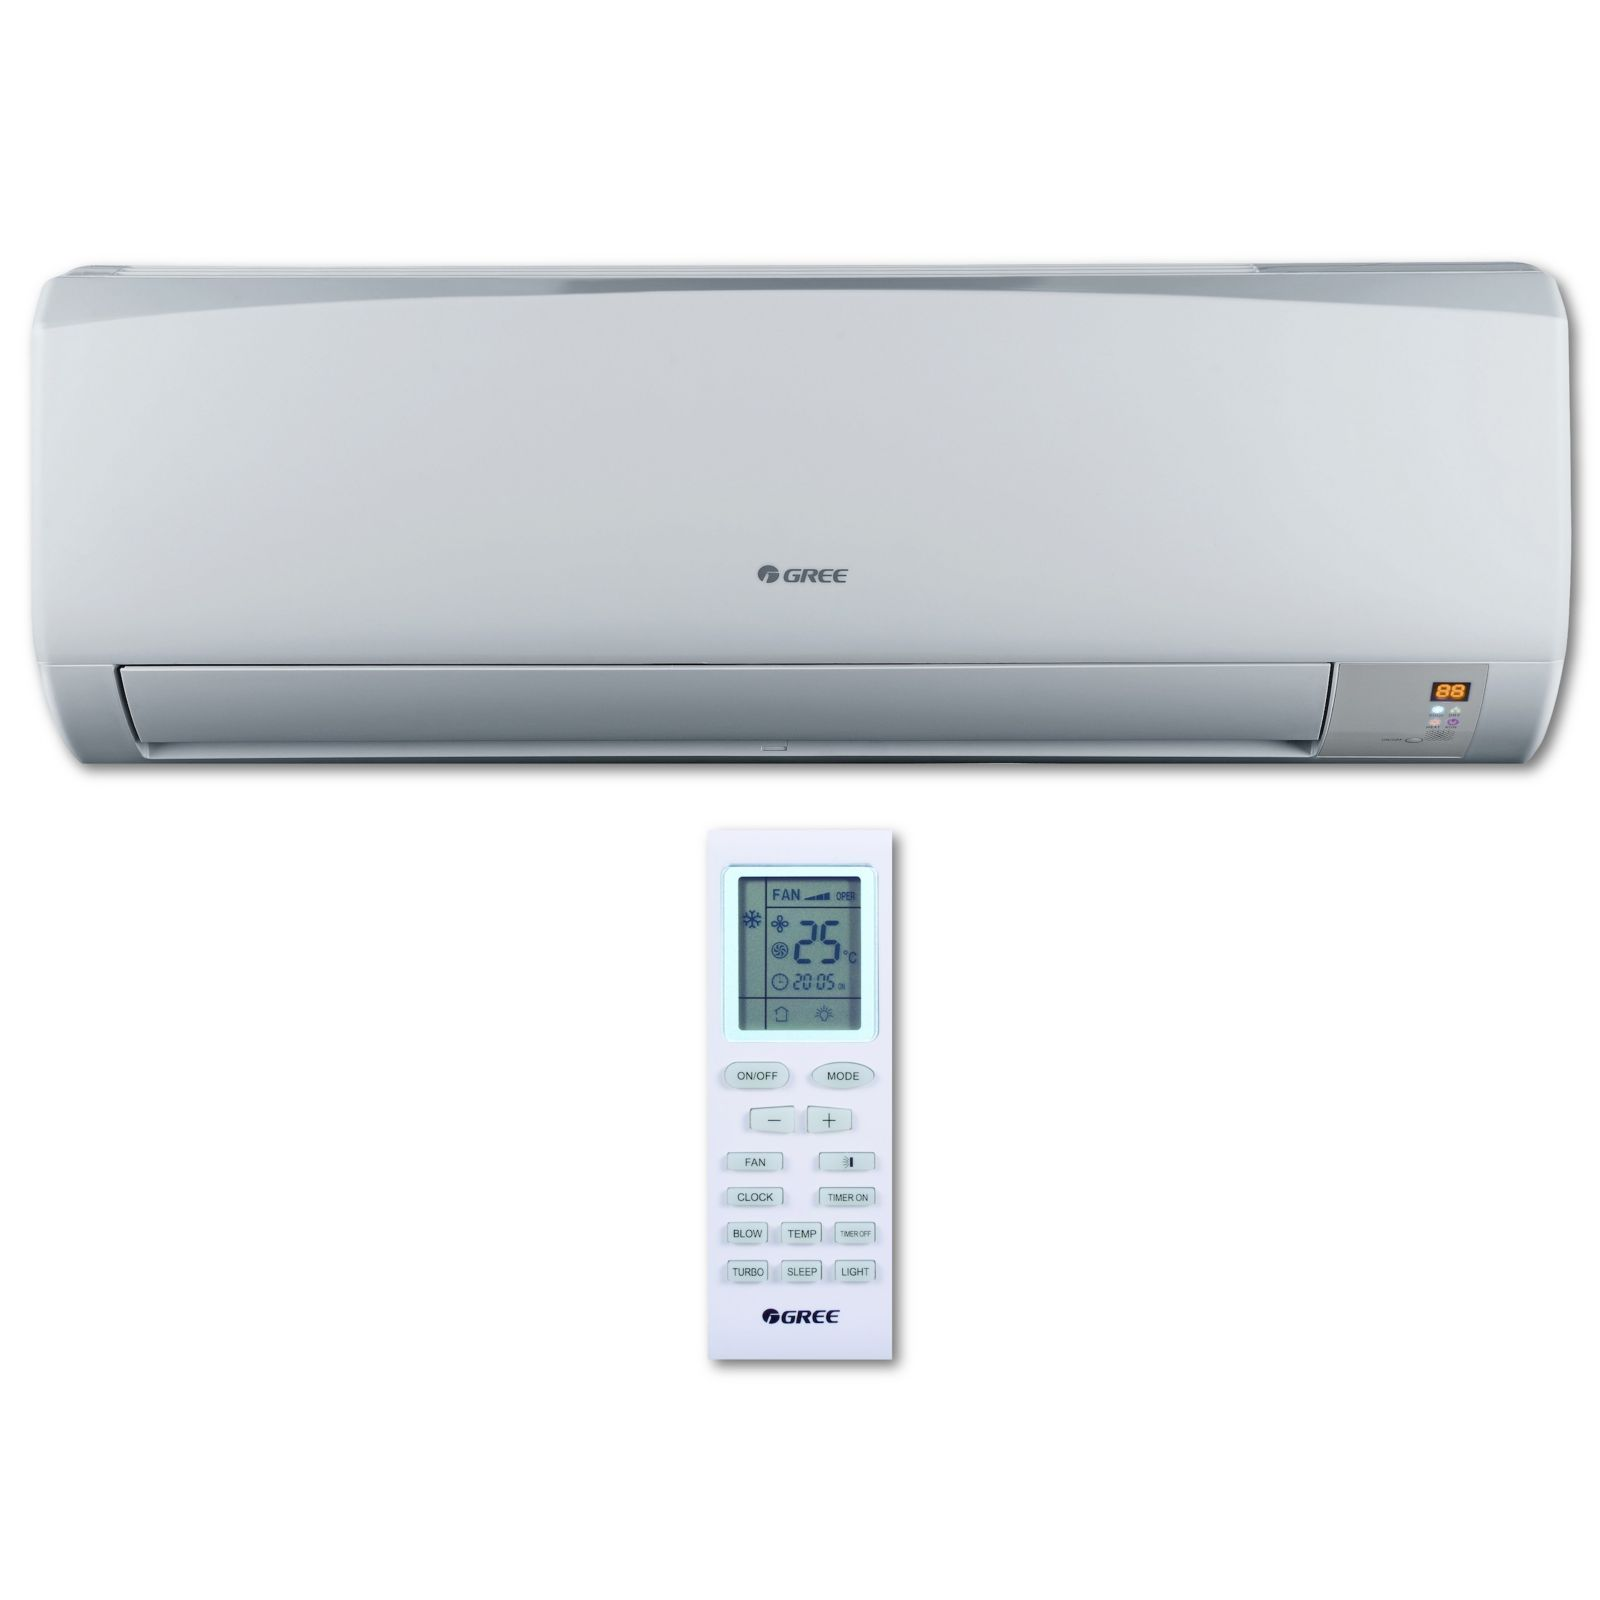 GREE RIO12HP230V1BH - 1 Ton, 16 SEER, 10.3 EER, 8.5 HSPF RIO Ductless Mini-Split Indoor Unit, 208-230/60